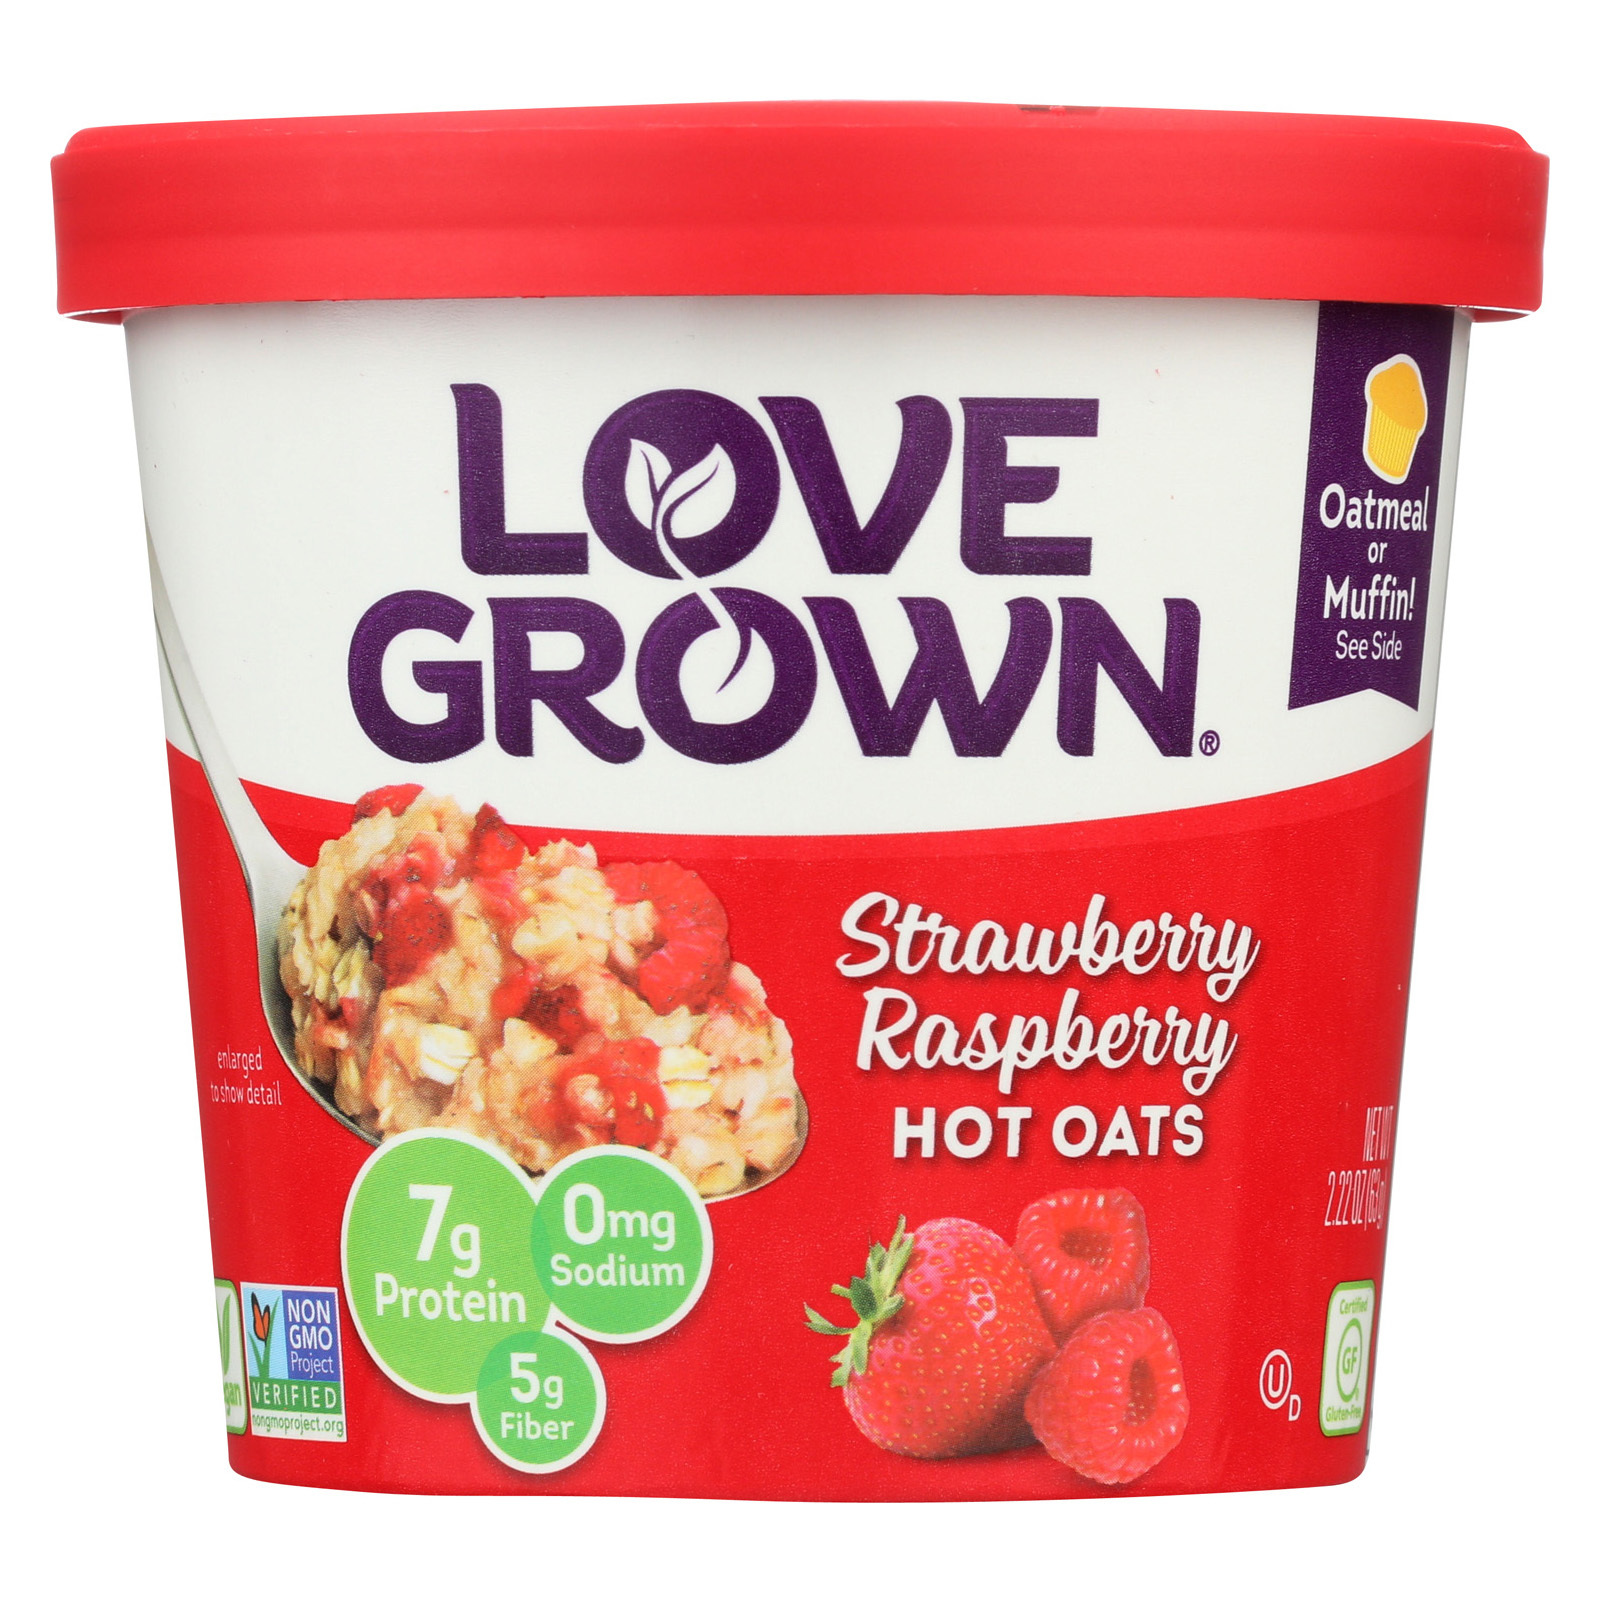 Love Grown Foods Hot Oats - Strawberry and Raspberry - Case of 8 - 2.22 oz.